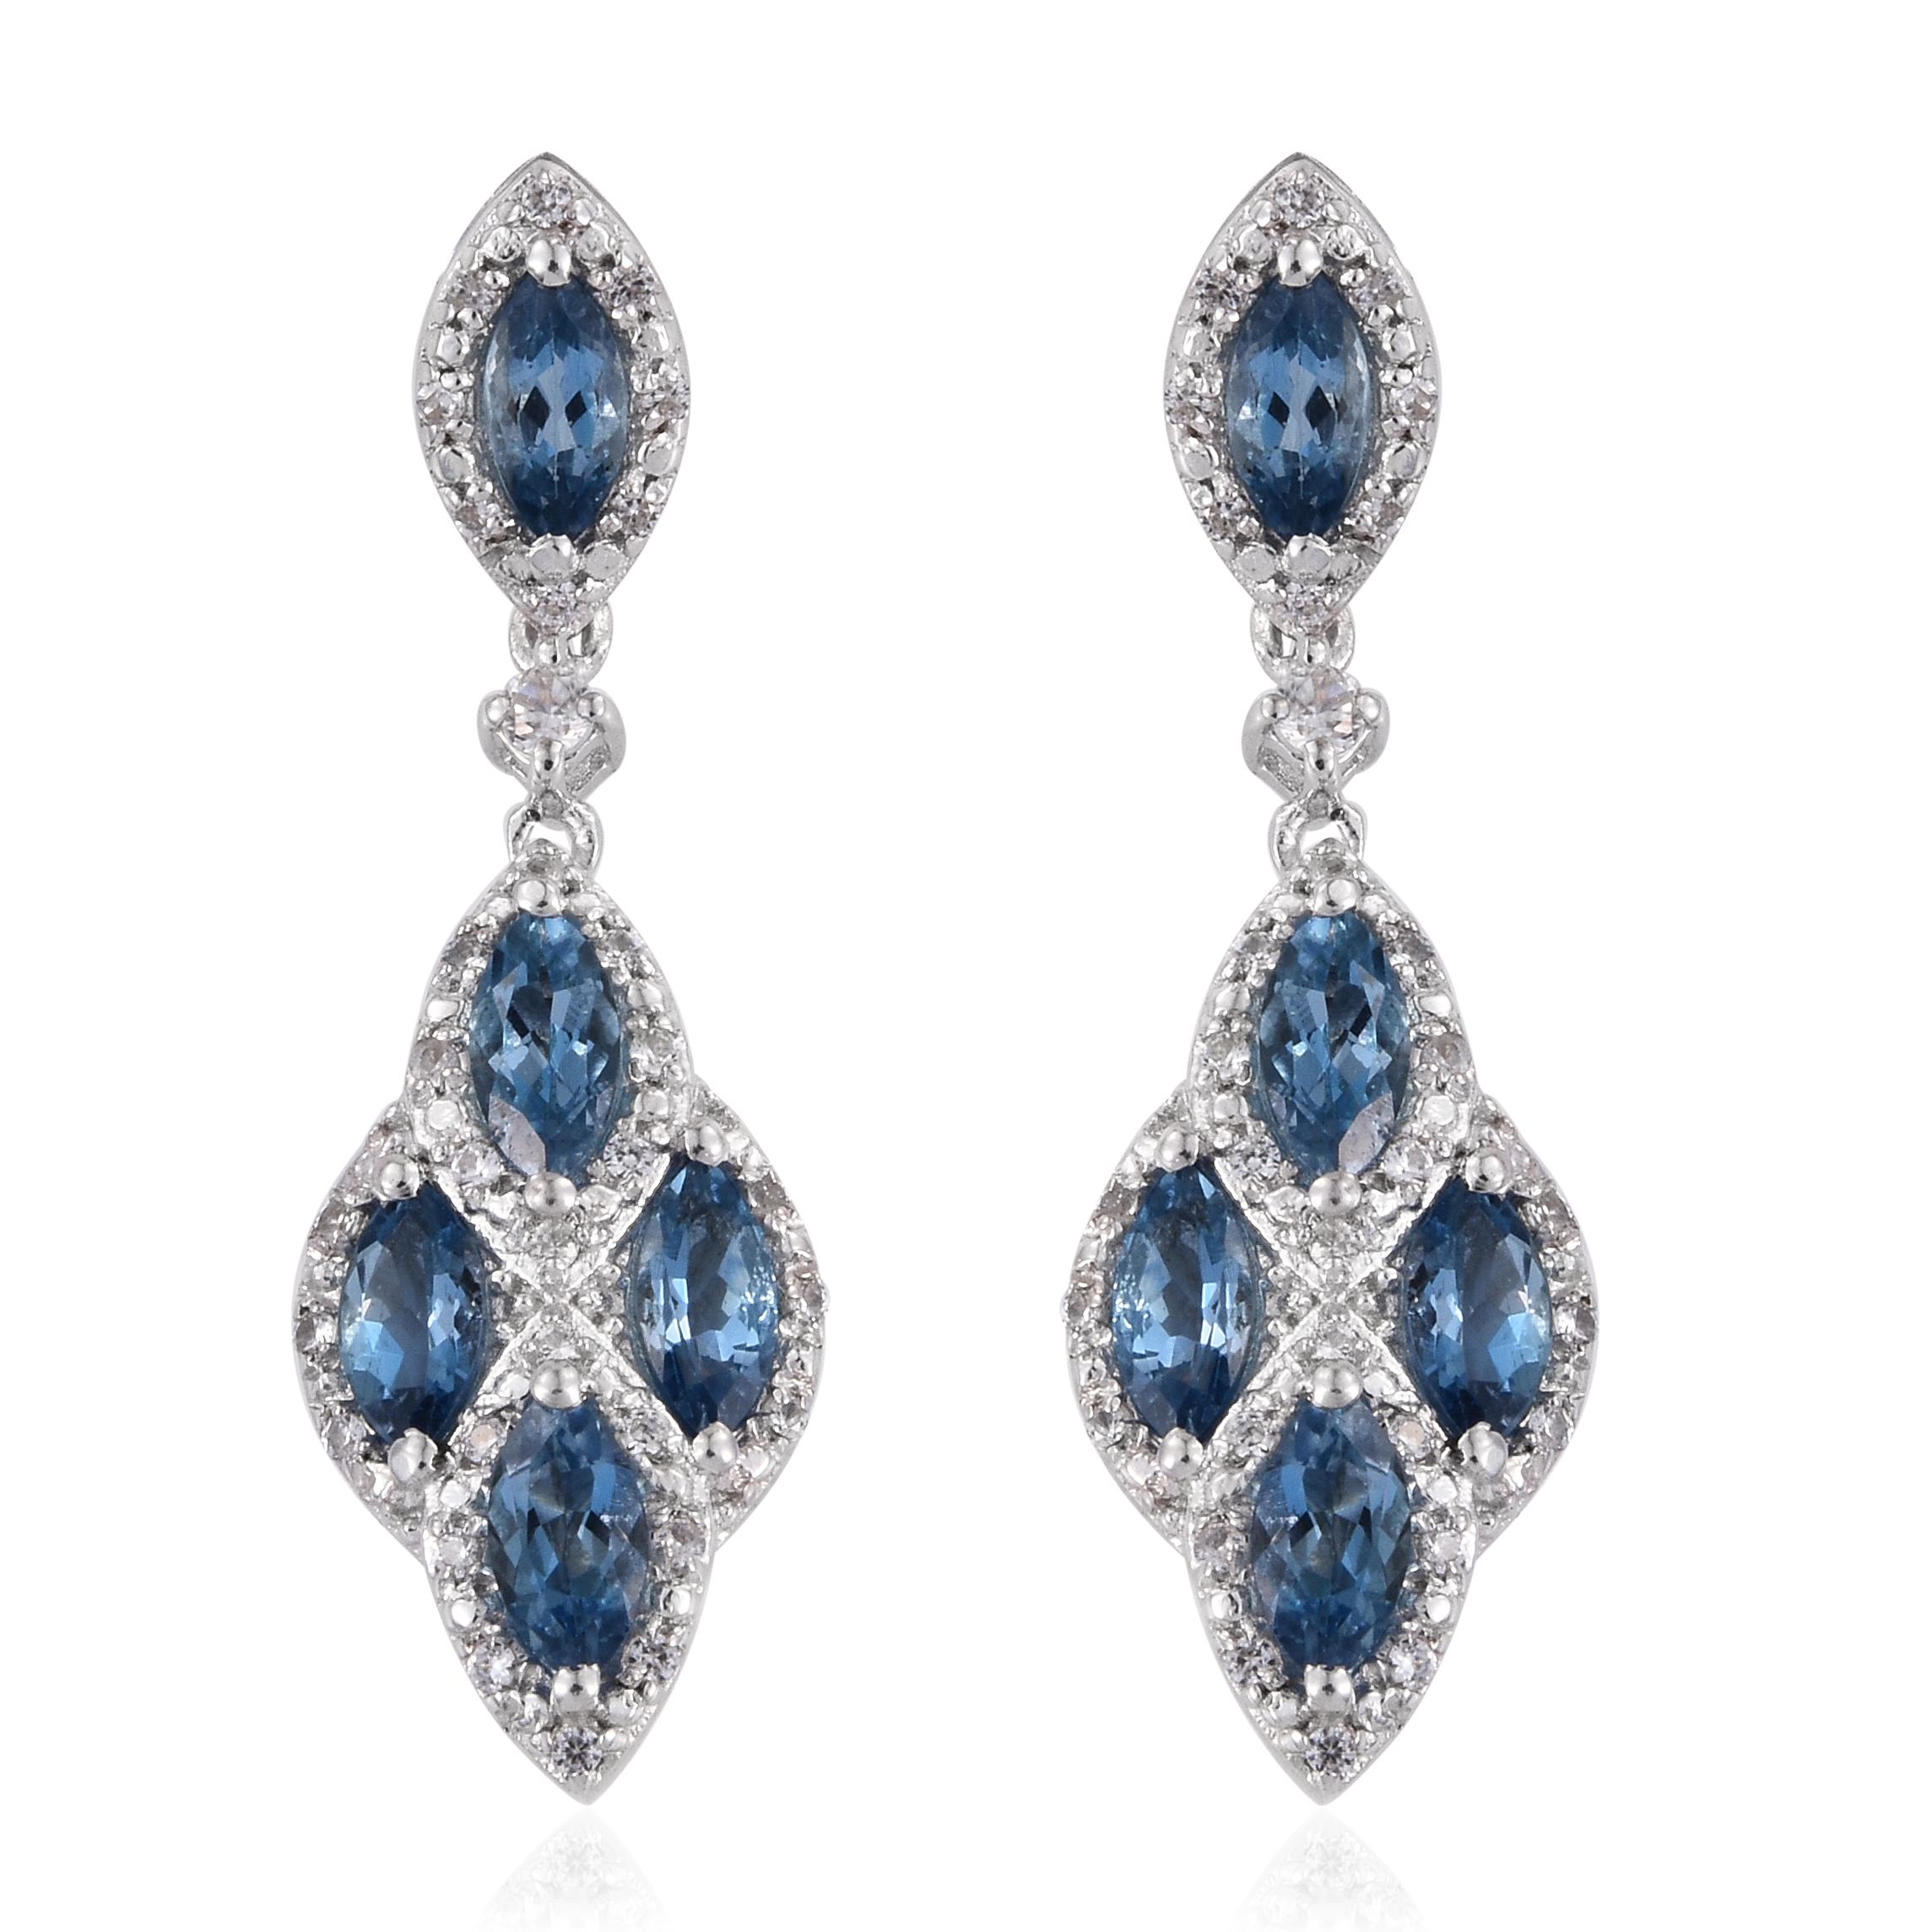 Details About 925 Sterling Silver Marquise Aquamarine Zircon Dangle Drop Earrings Jewelry